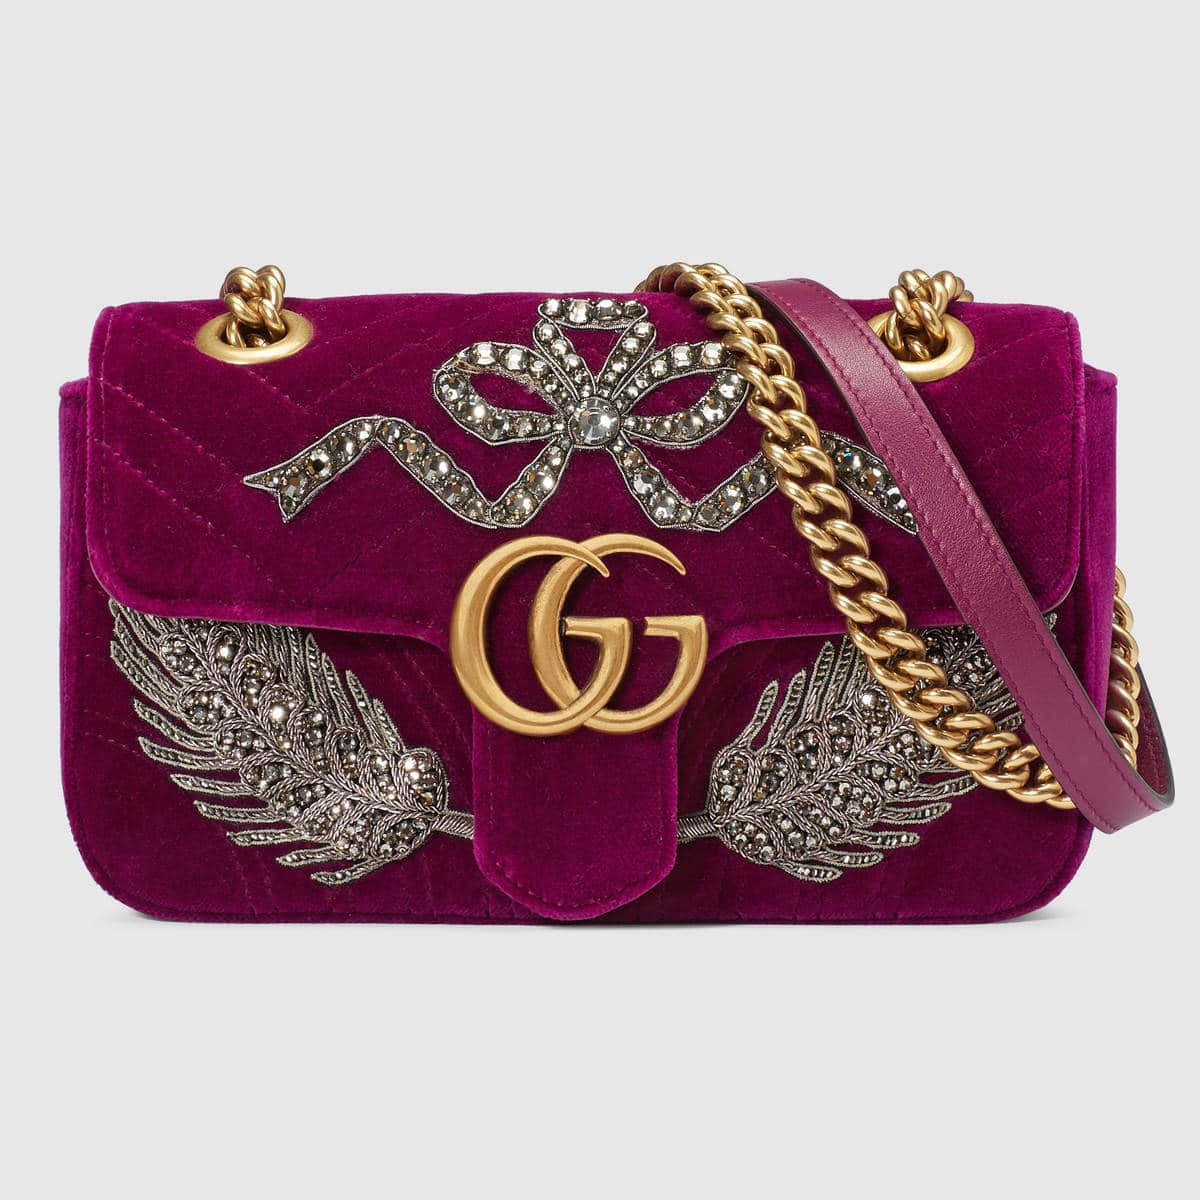 Gucci Bag Price List Reference Guide | Spotted Fashion